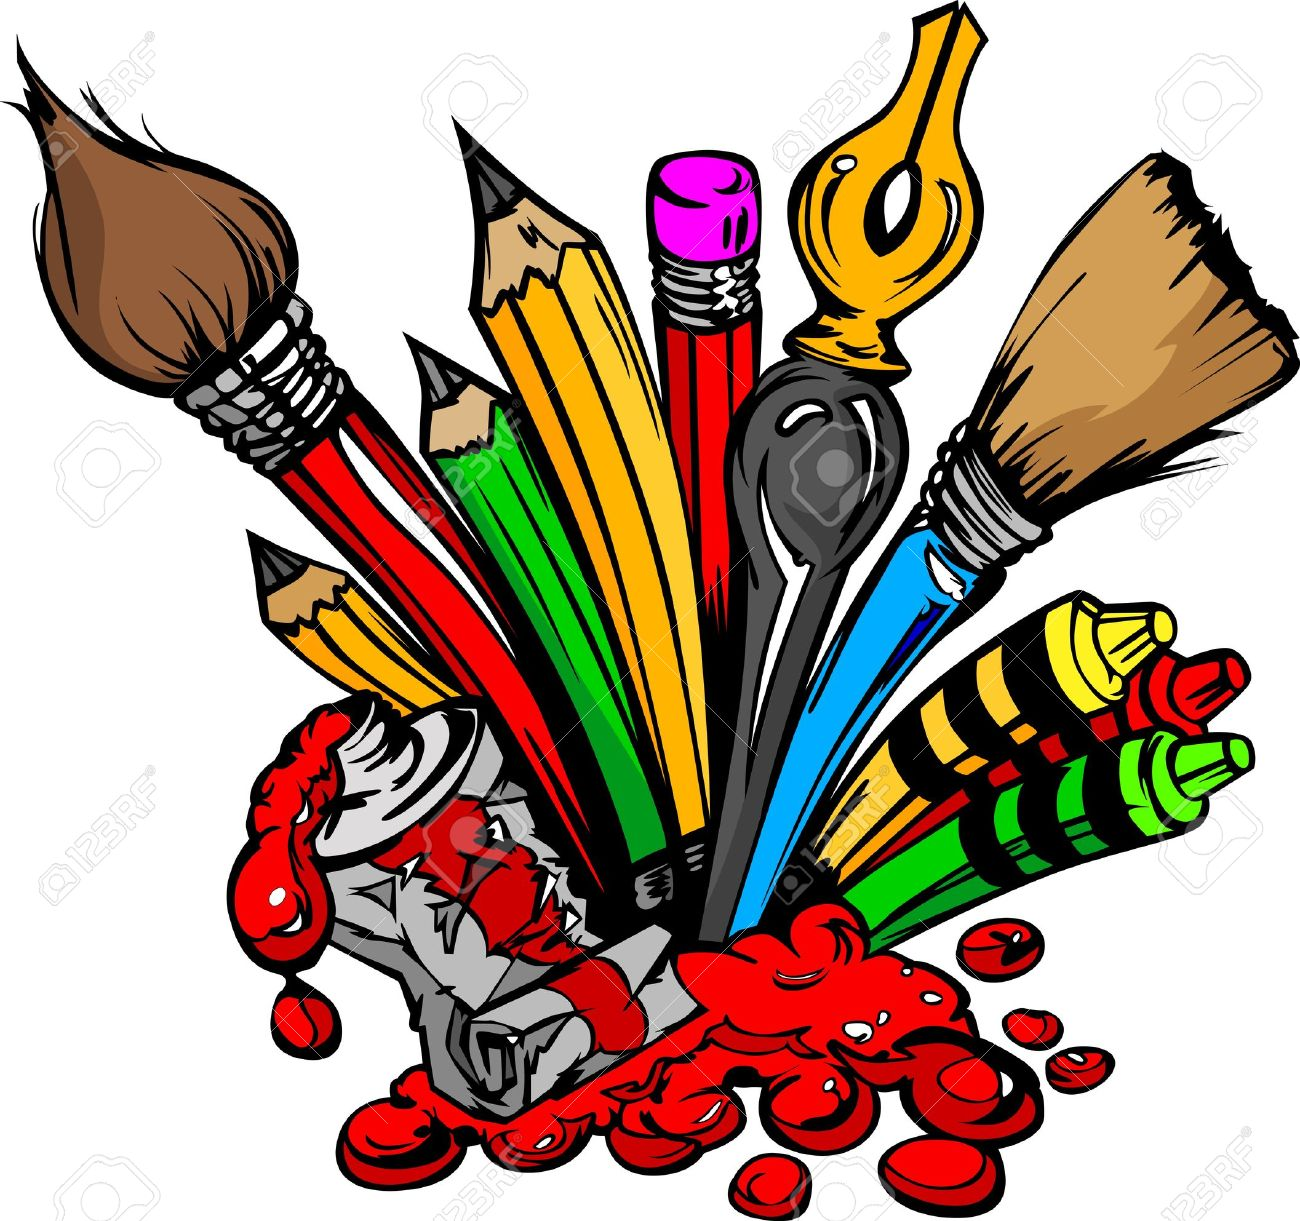 1300x1221 Art And Back To School Supplies Paint Brushes, Pencils, Oil